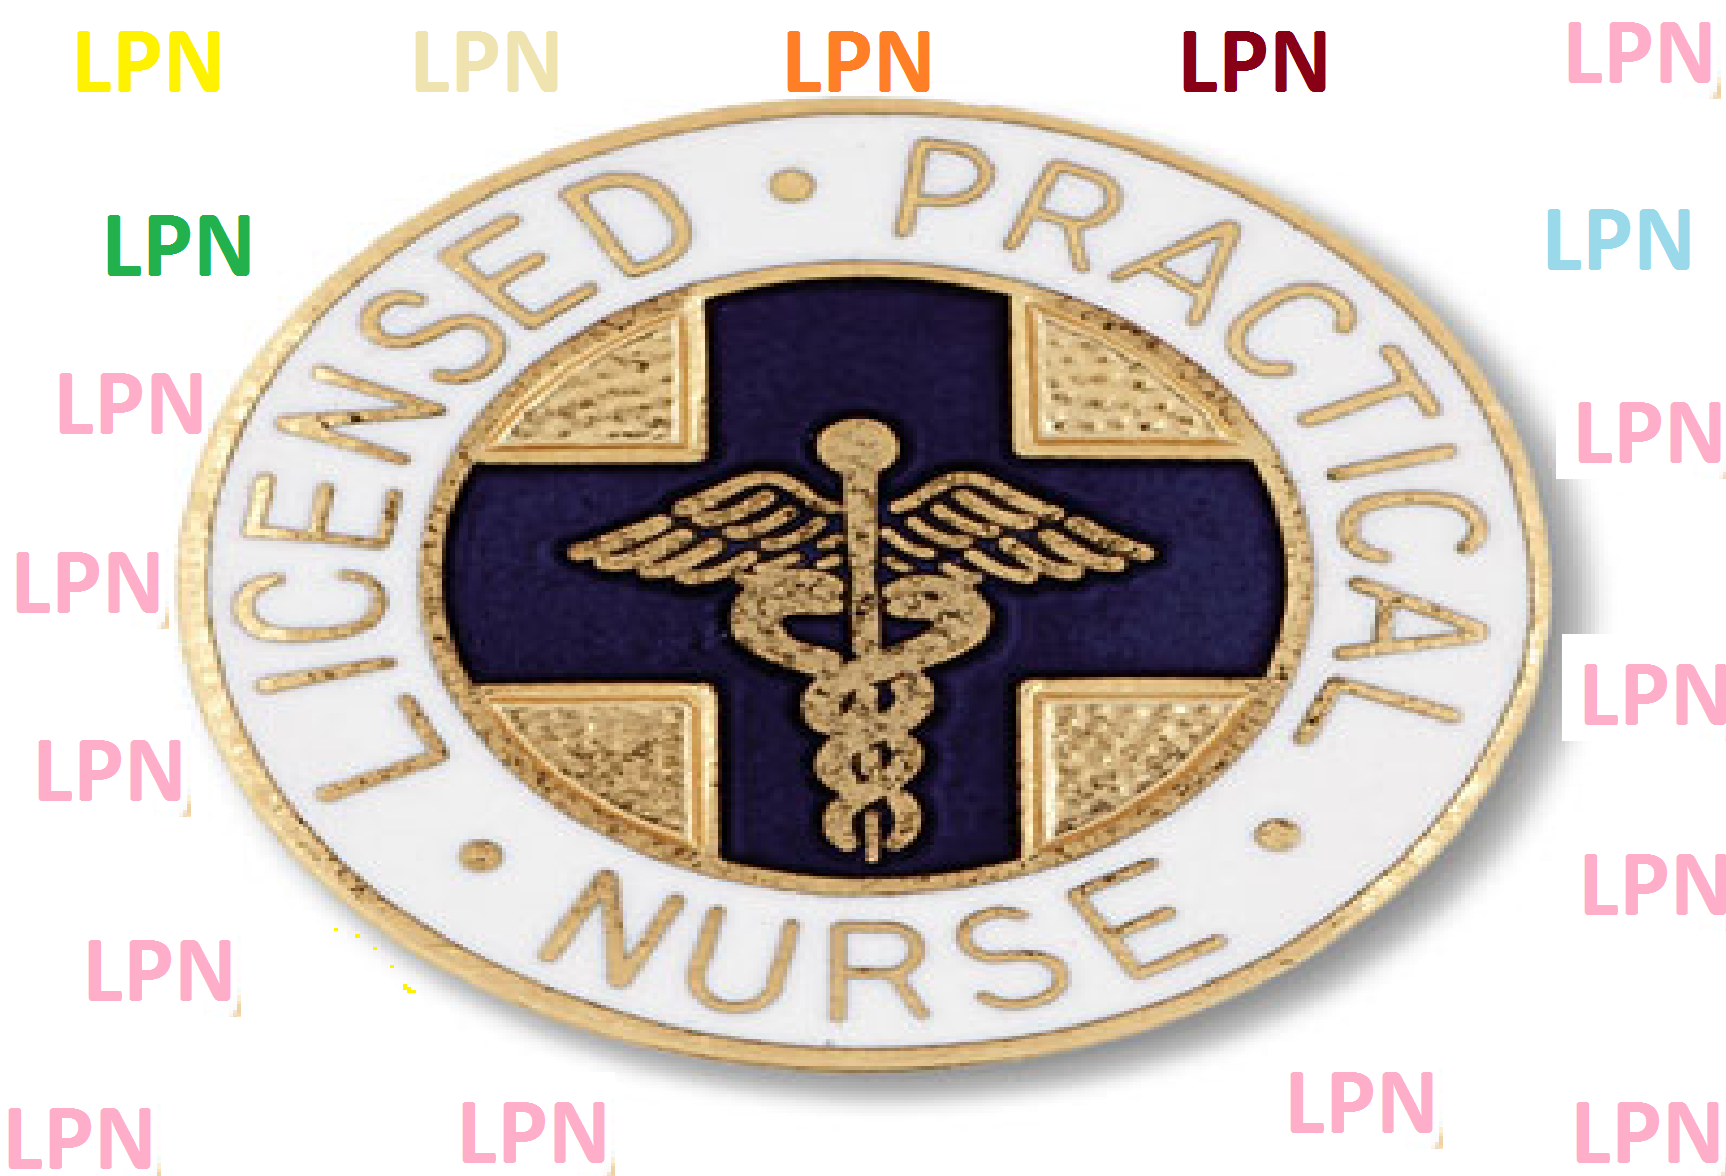 Licensed Practical Nurse (LPN) best college majors